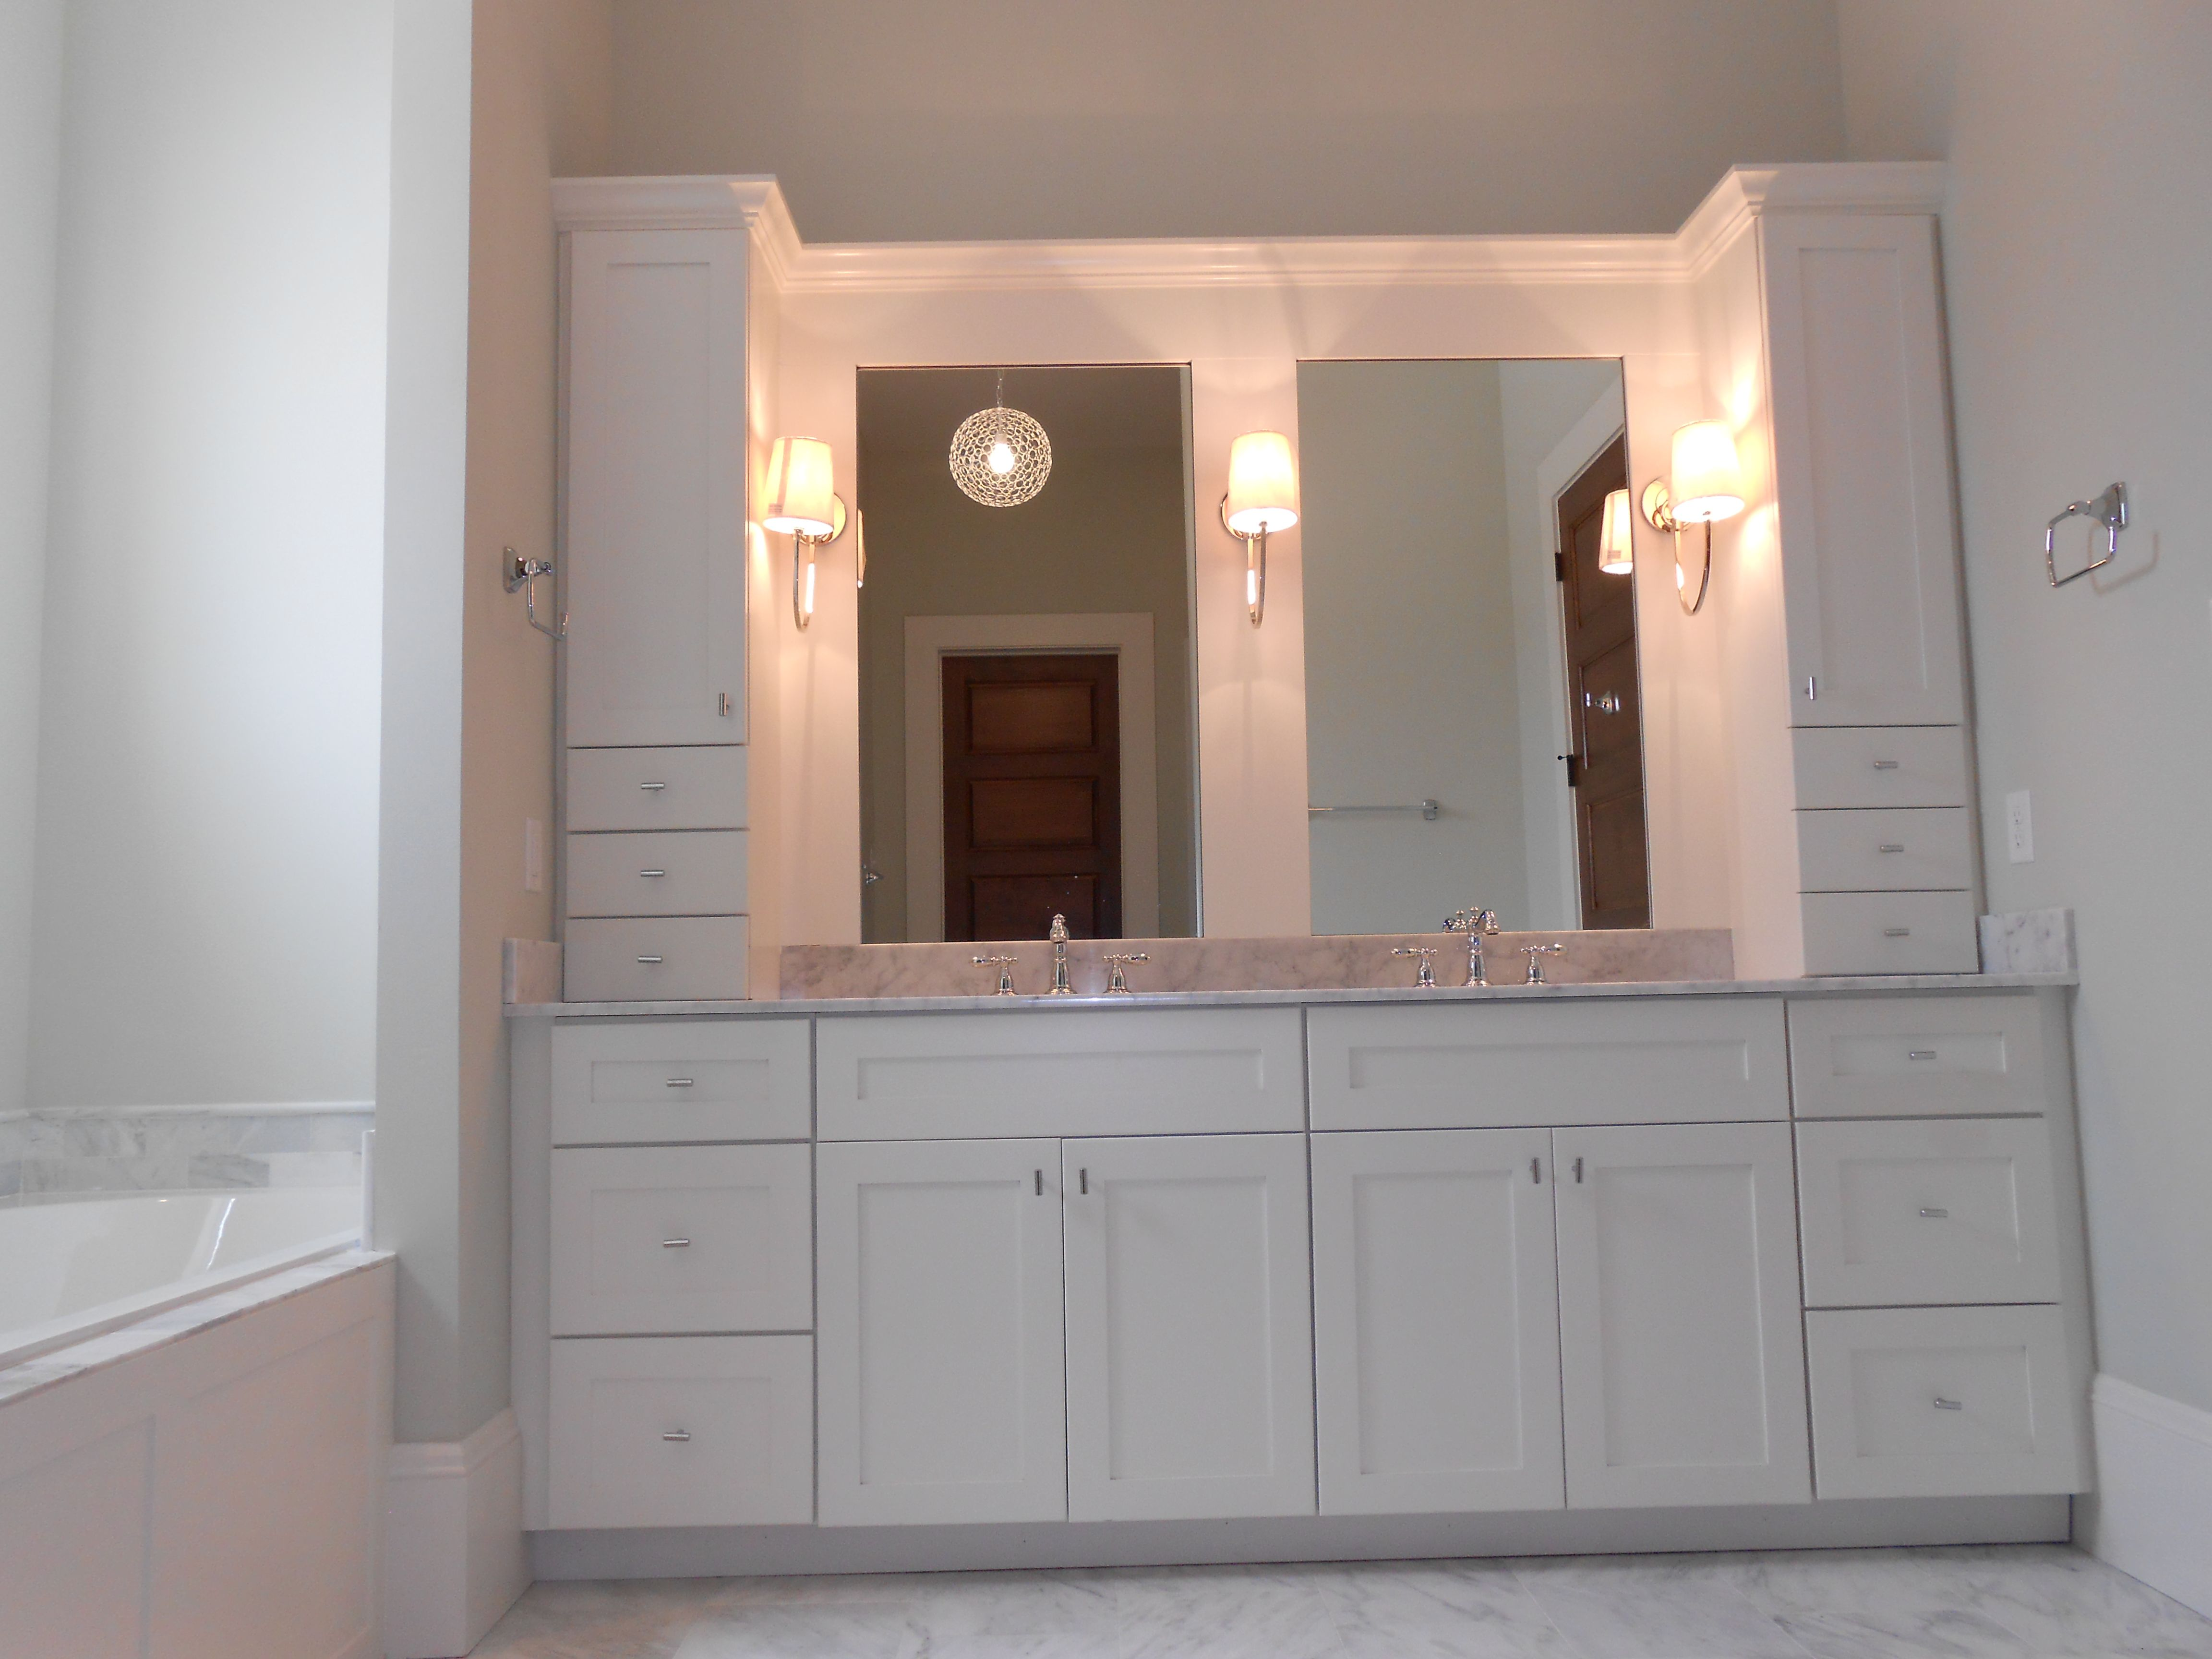 lowes built your cabinets vanities budget semi own full to the bathroom build tops on can bath where made size custom of i vanity find minimalist in